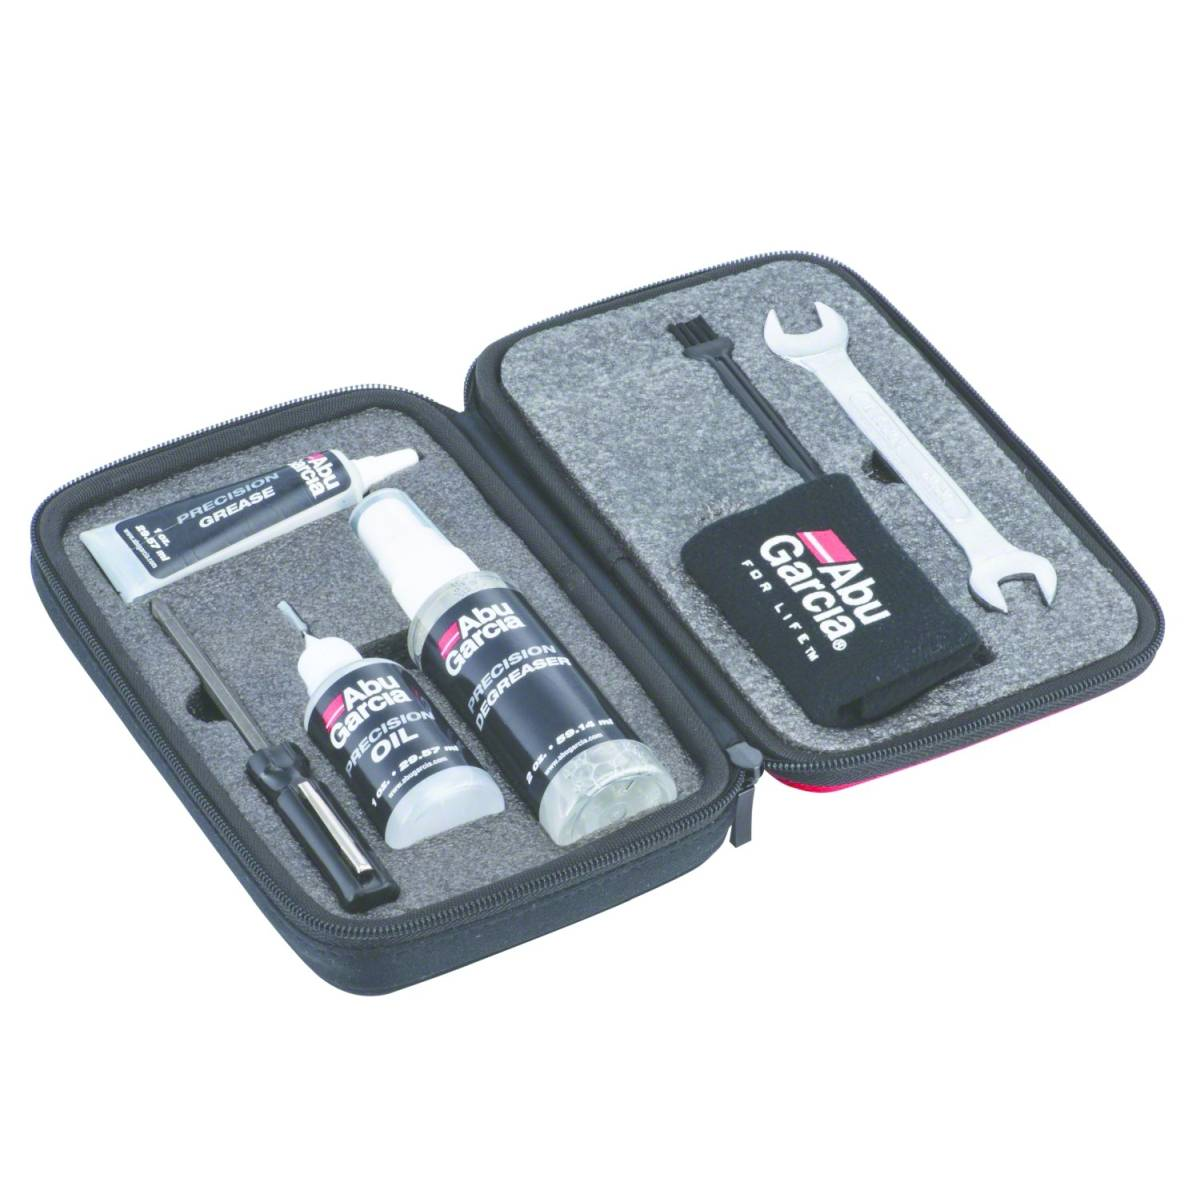 Abu Garcia Reel Maintenance Kit; This is part of the Reel Spools Handles Parts collection offered from Fishin' My Best Life - fishinmybestlife.com